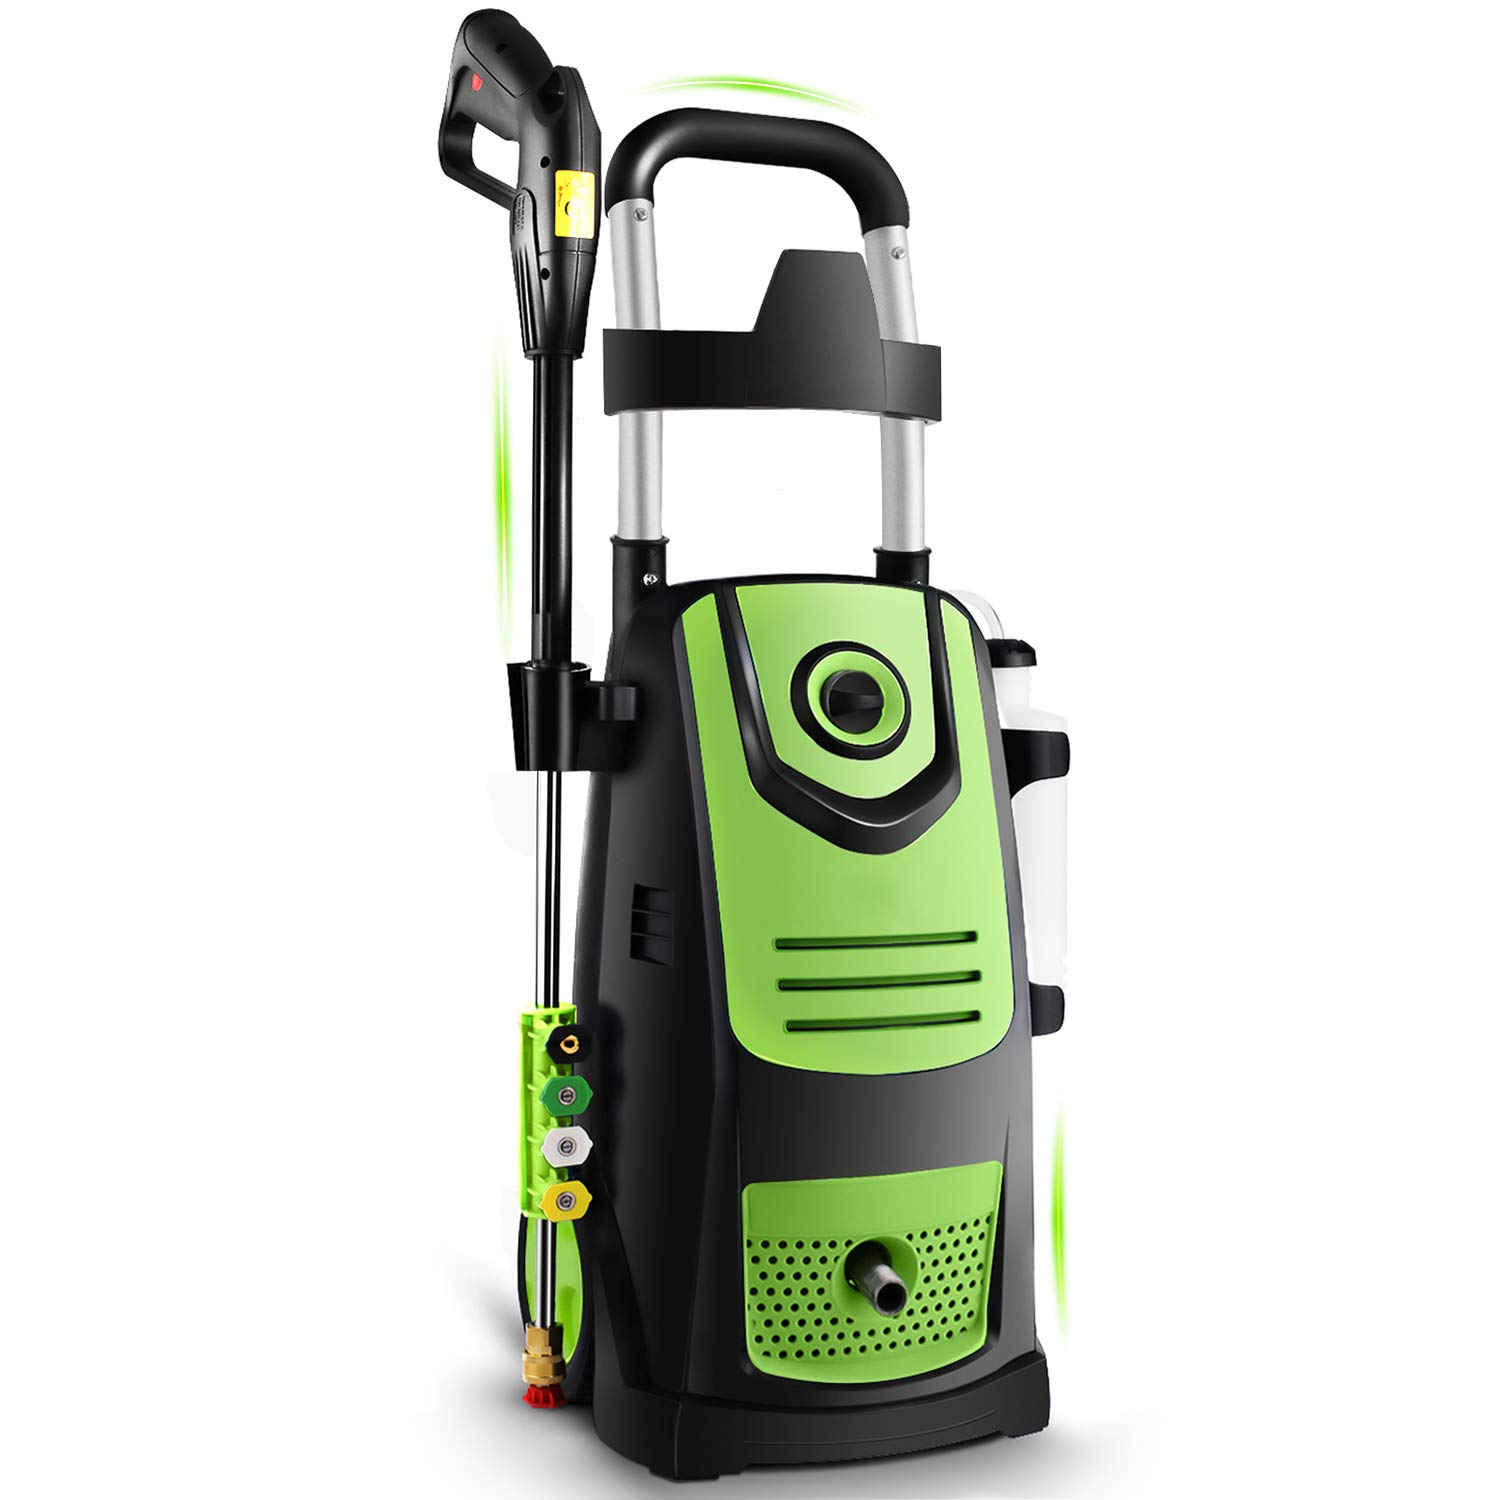 Suyncll 3800 PSI 2.8GPM Electric Pressure Washer Electric Power Washer with Soap Bottle (Green)